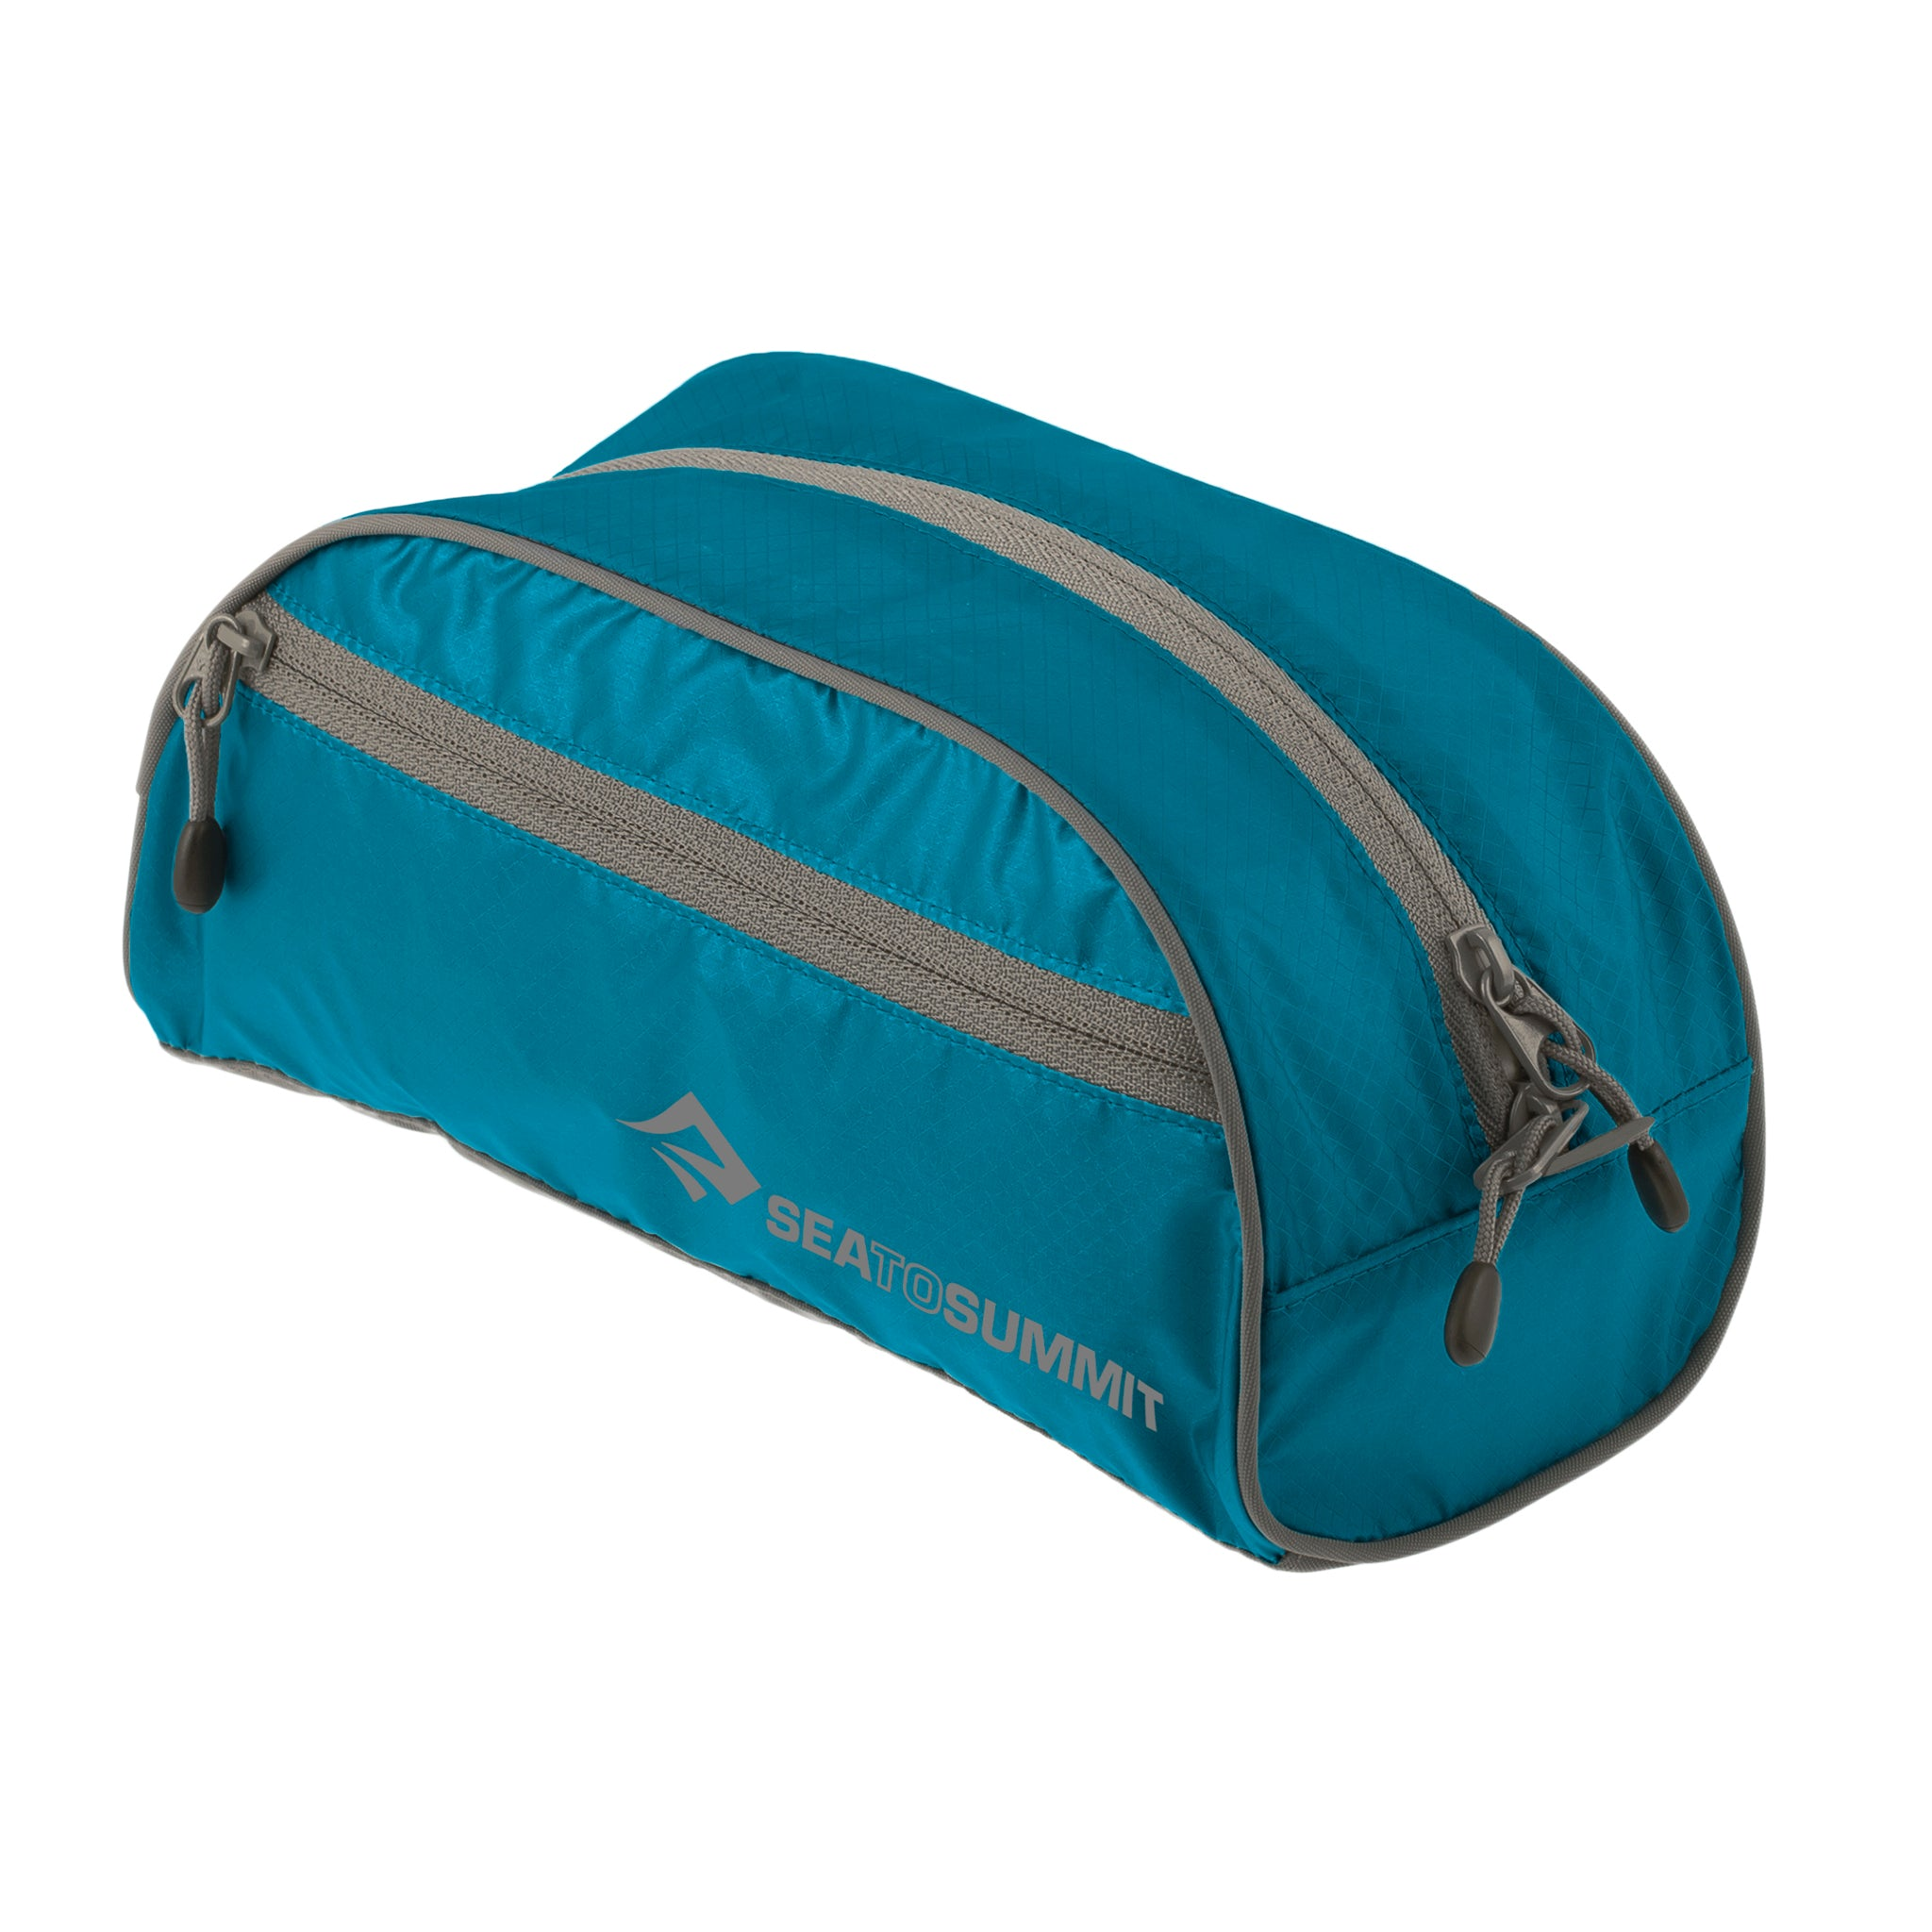 Travelling Light _Toiletry Bag _ waterproof _ small _pacific blue